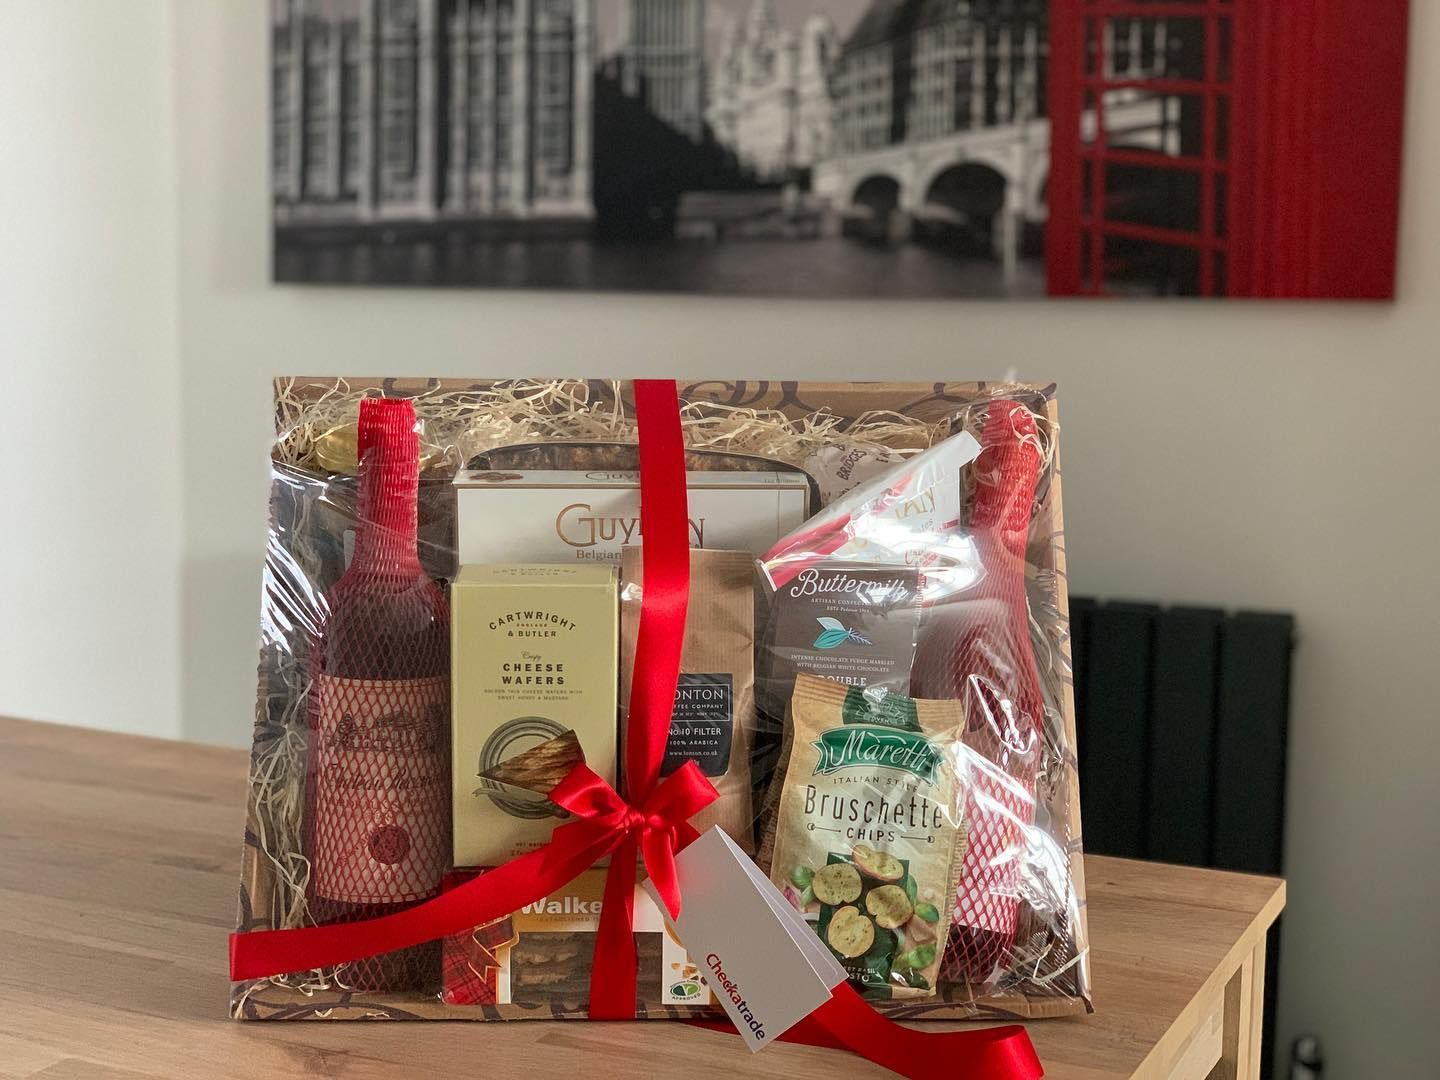 A Big Thank You To Checkatrade For The Gift It S A Very Nice Gesture And The Guys At Bselectrical Appreciate It Massively Gift In 2020 Gift Wrapping Gift S Gifts